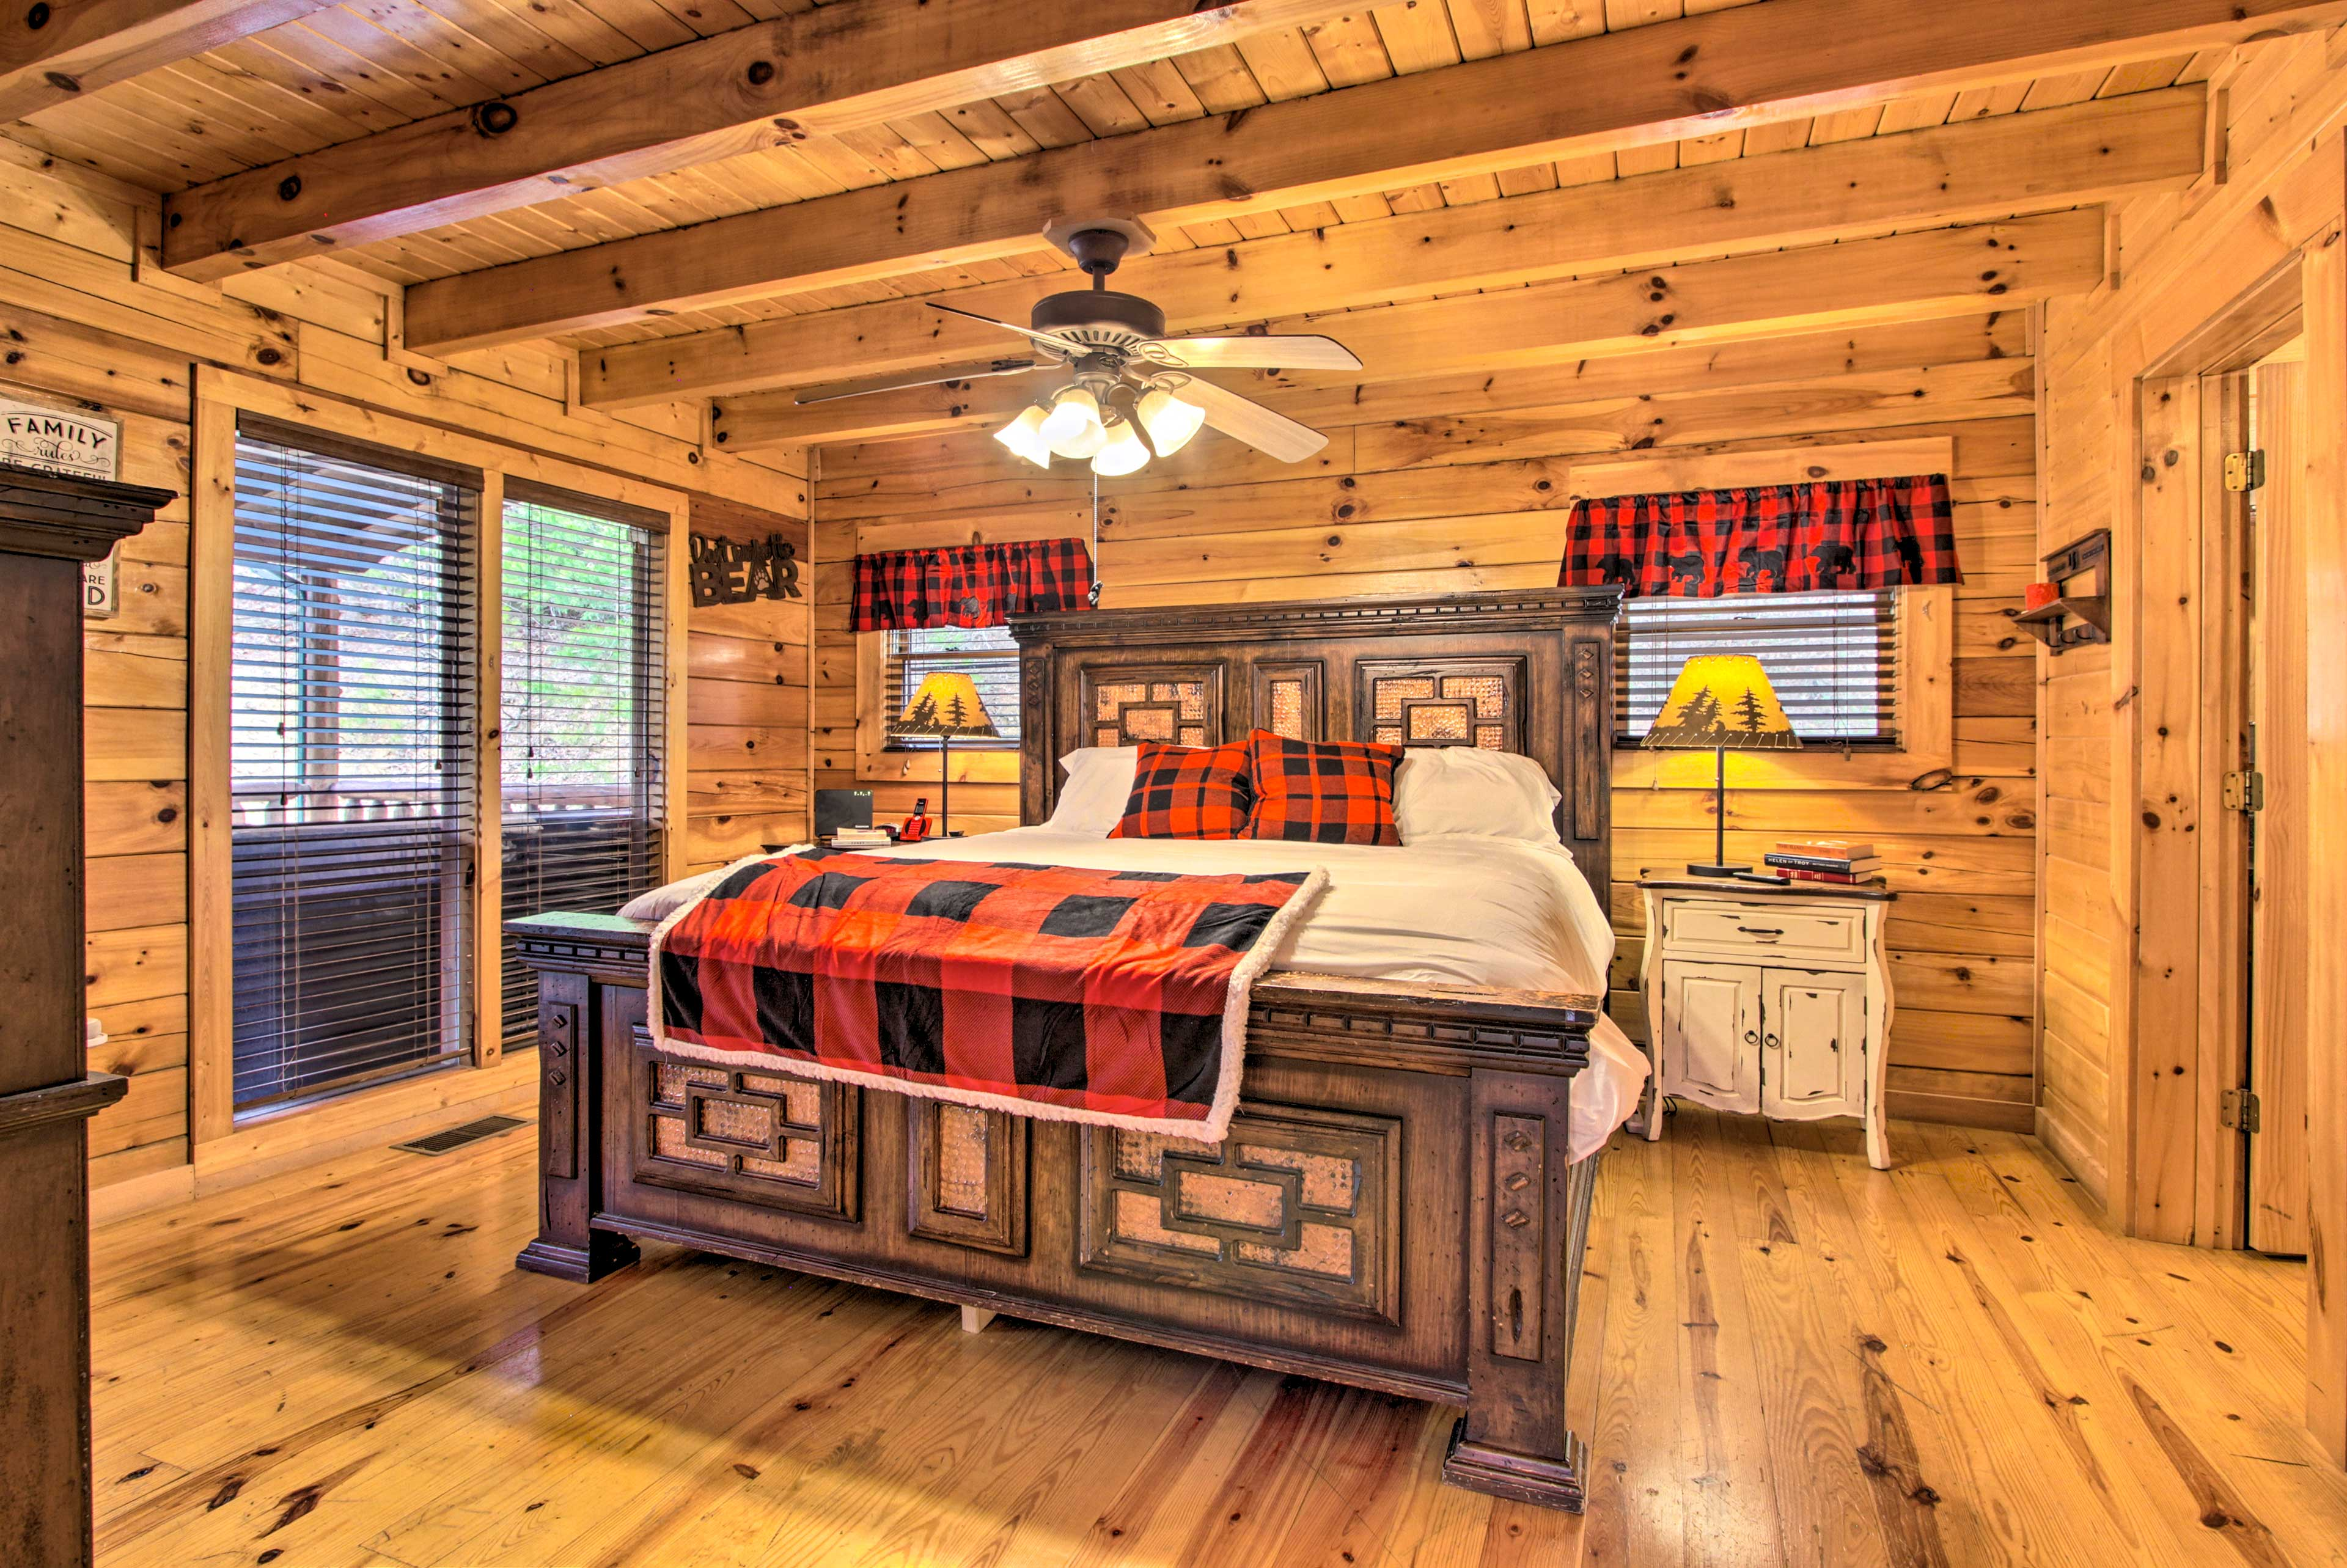 The main floor has a spacious master bedroom with a king bed.